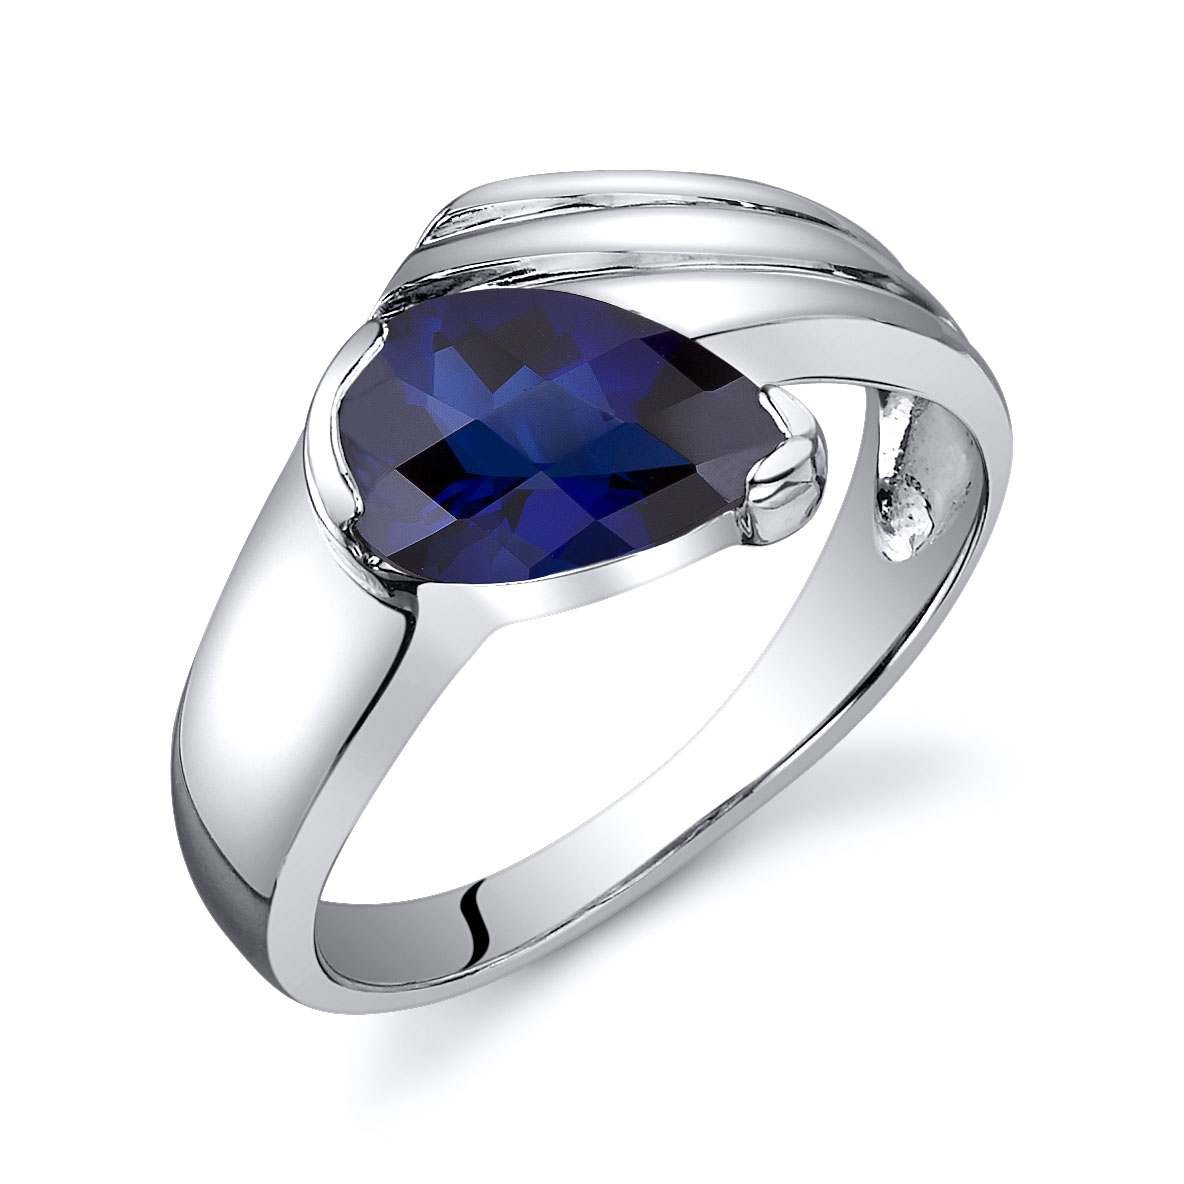 Sapphire Engagement Ring in Sterling Silver